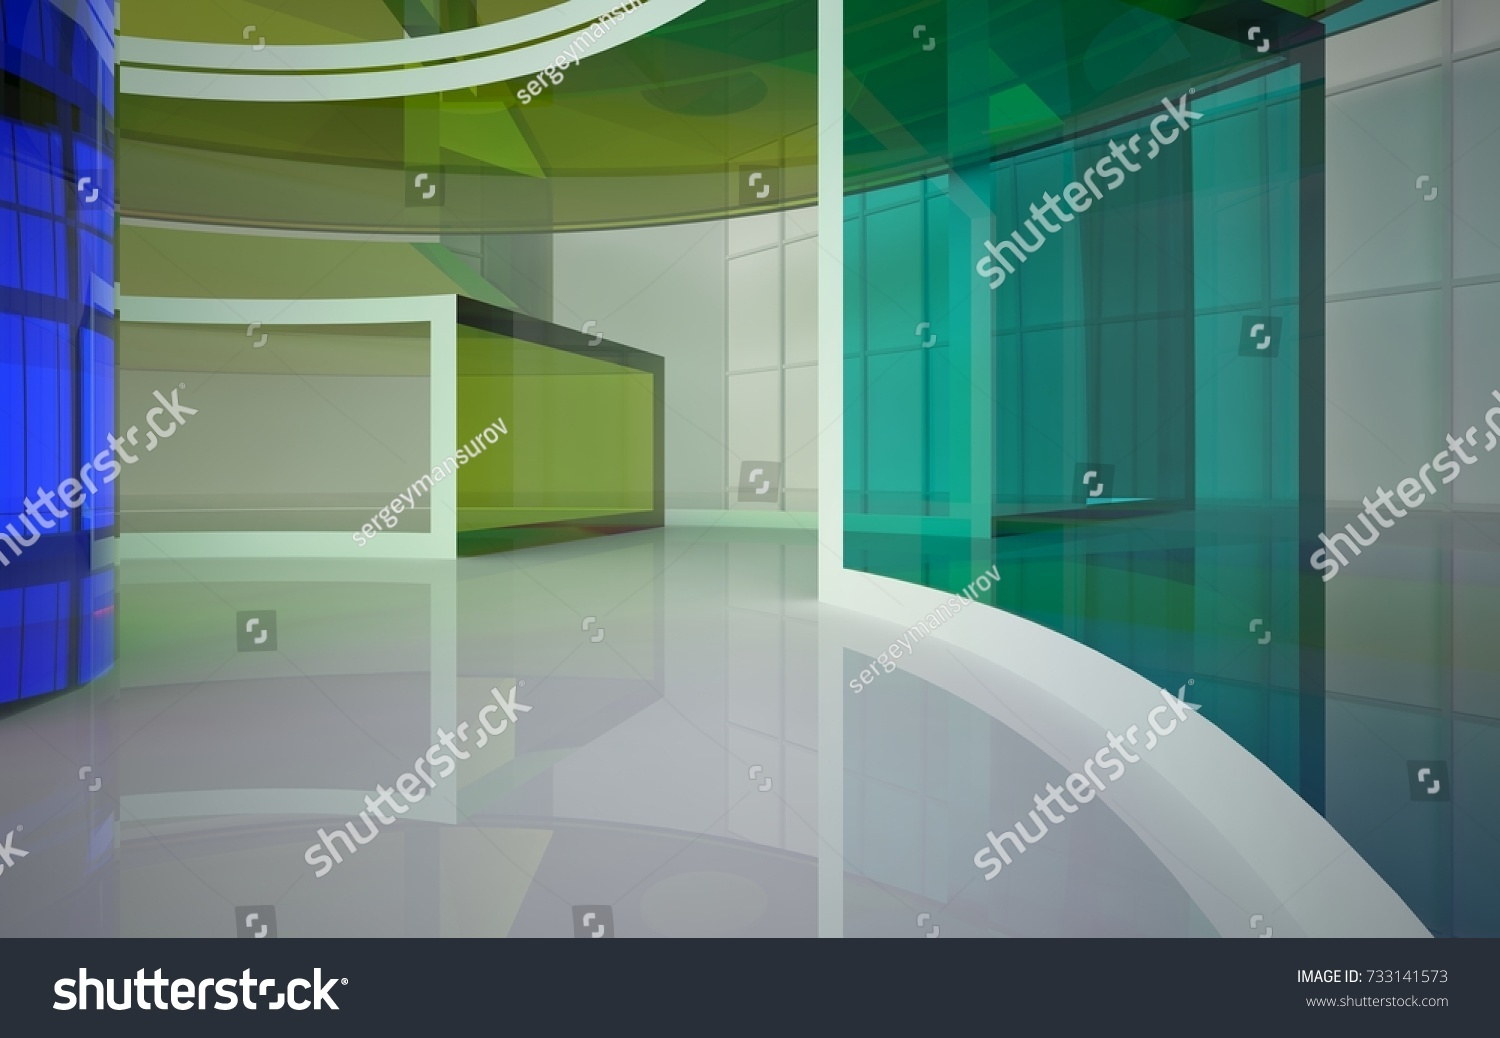 Abstract blue glass roof modern interior design buildings. | EZ Canvas